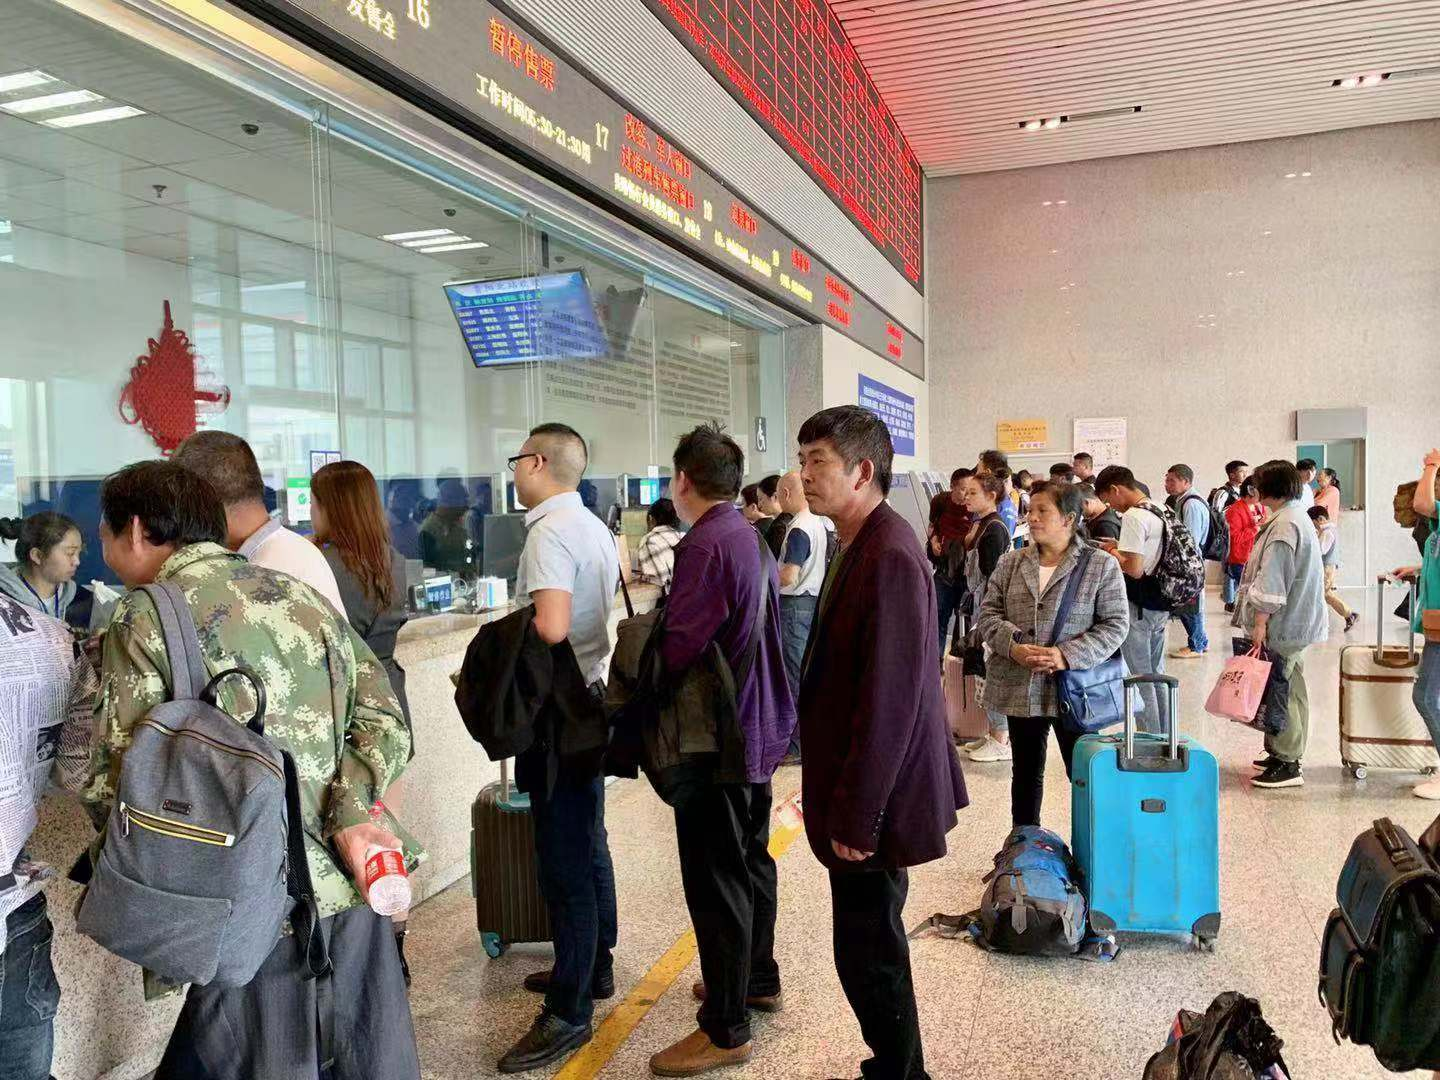 Travel in China falls during Chinese New Year. Credit: Guizhou television station